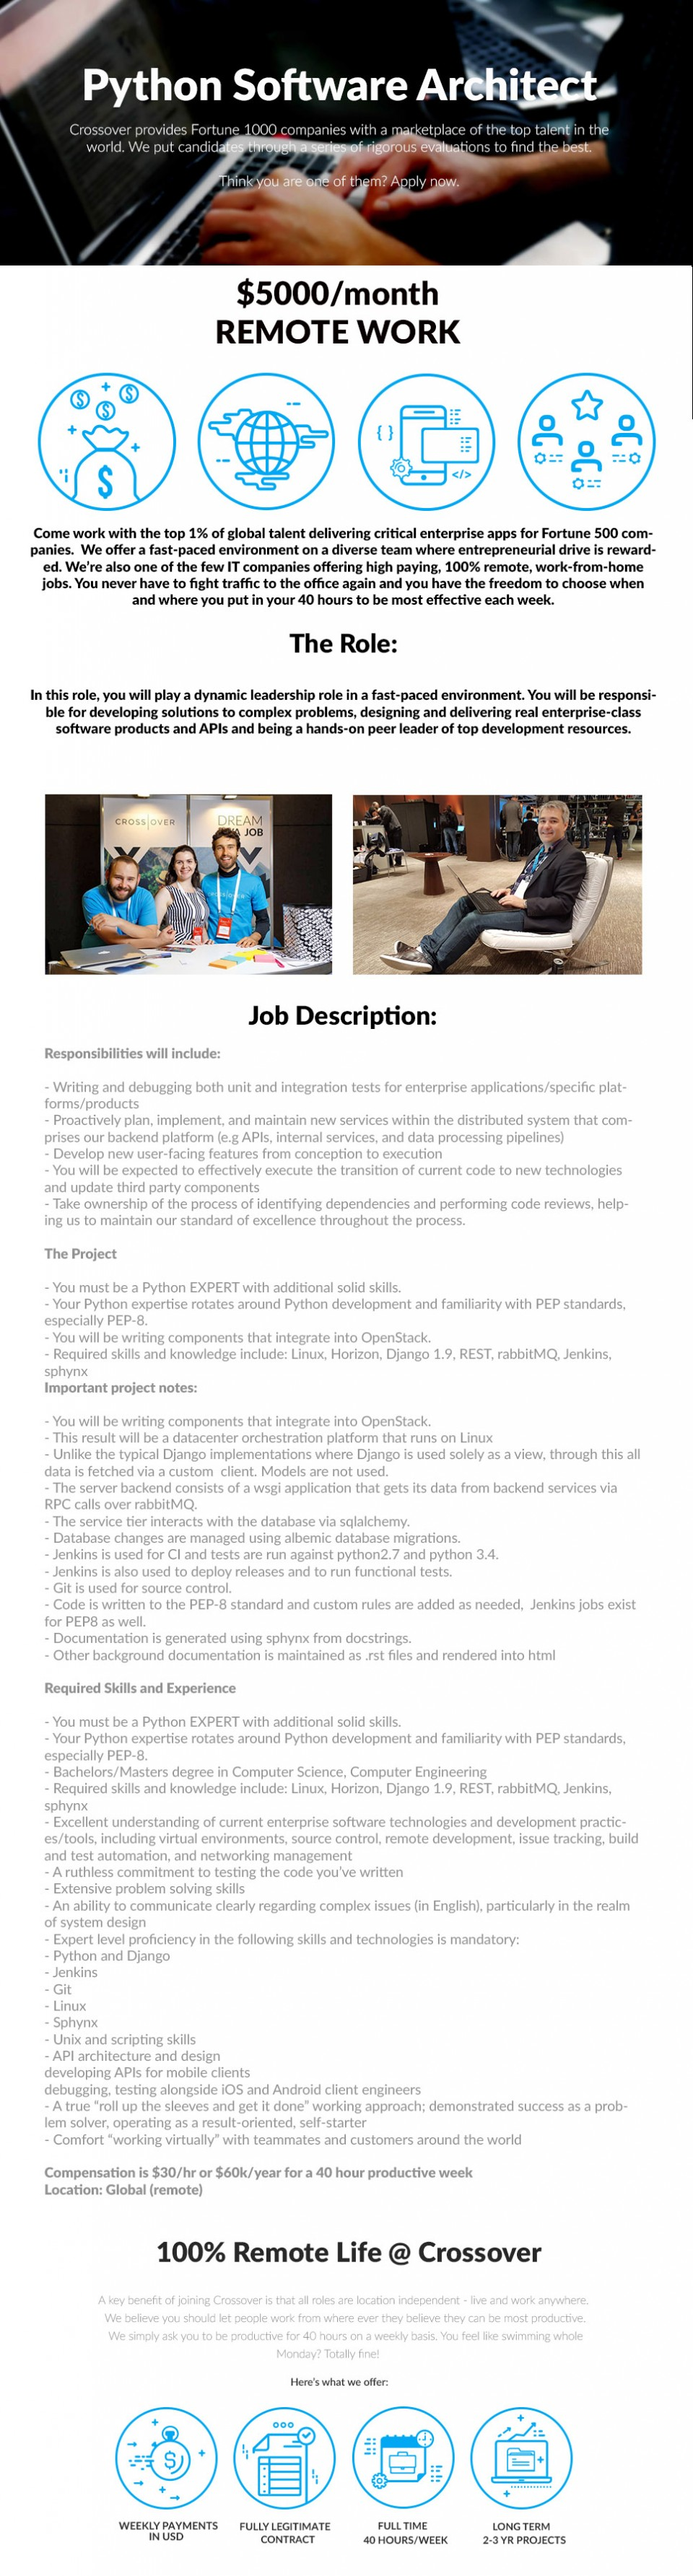 Python Software Architect - WORK FROM HOME